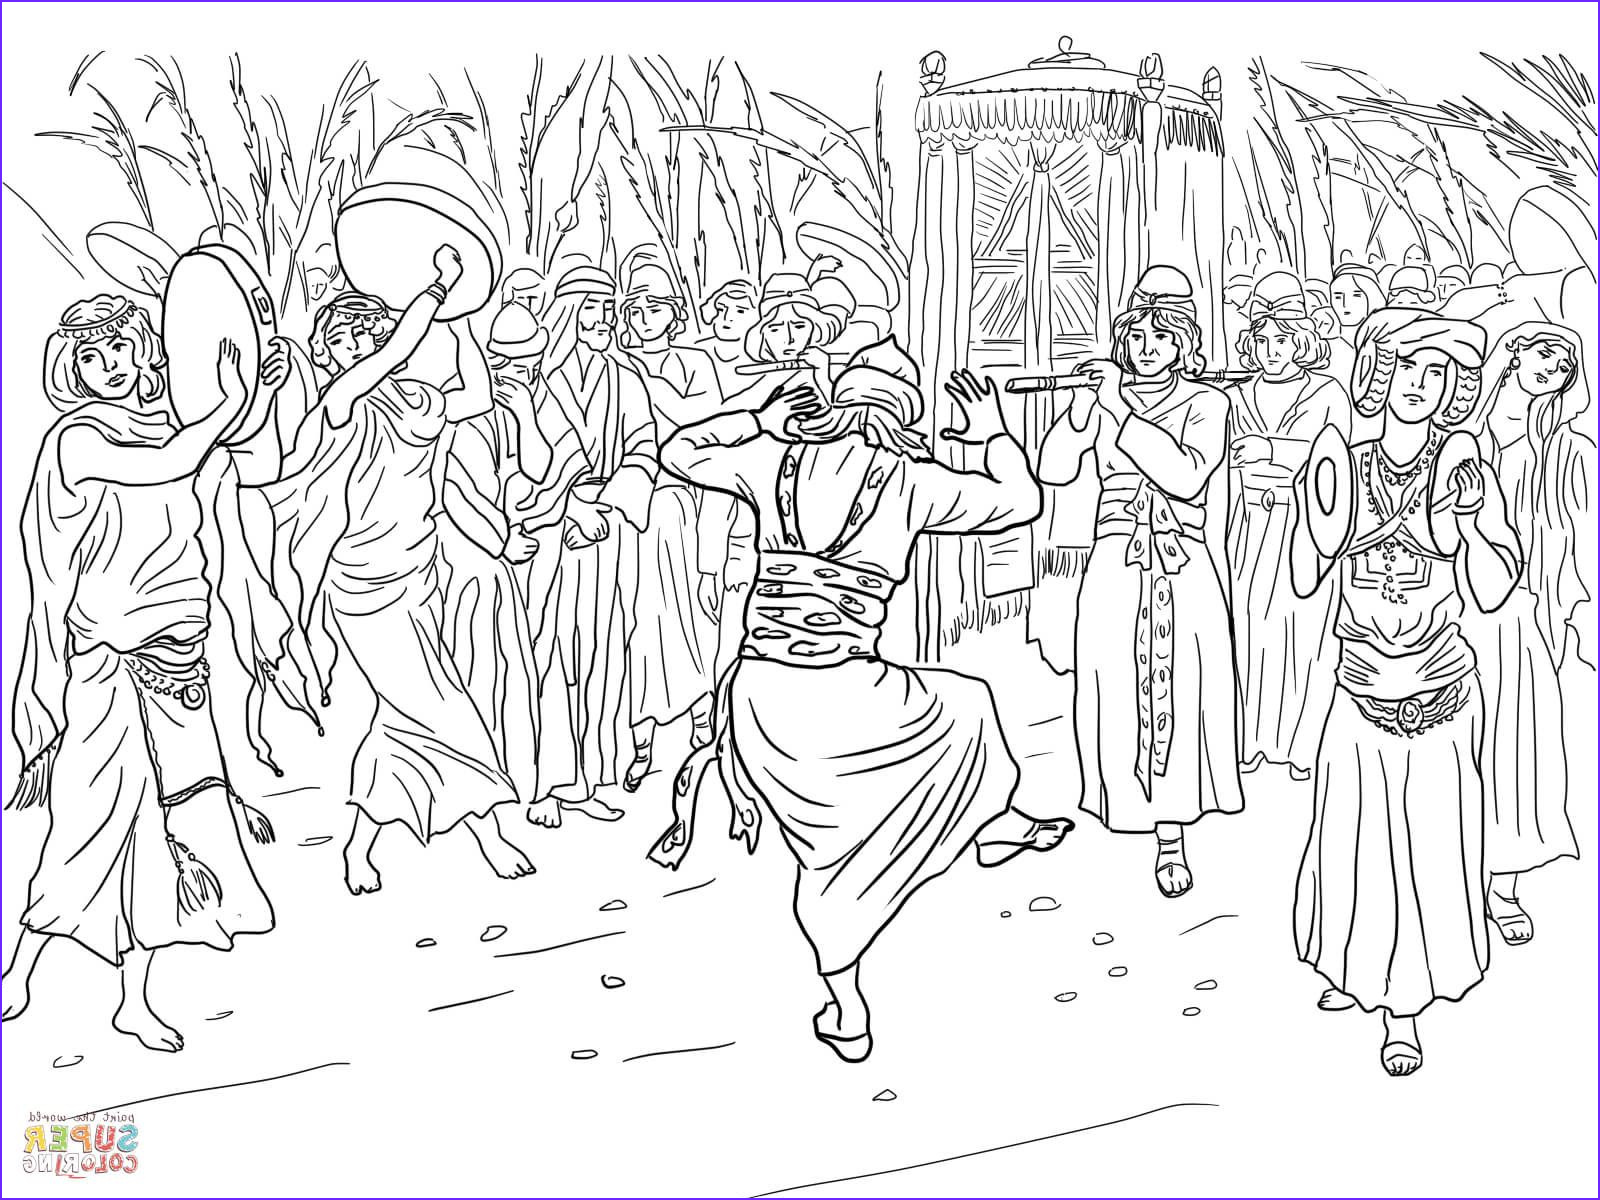 King David Coloring Page Inspirational Photos King David Dancing before the Ark Of the Covenant Coloring